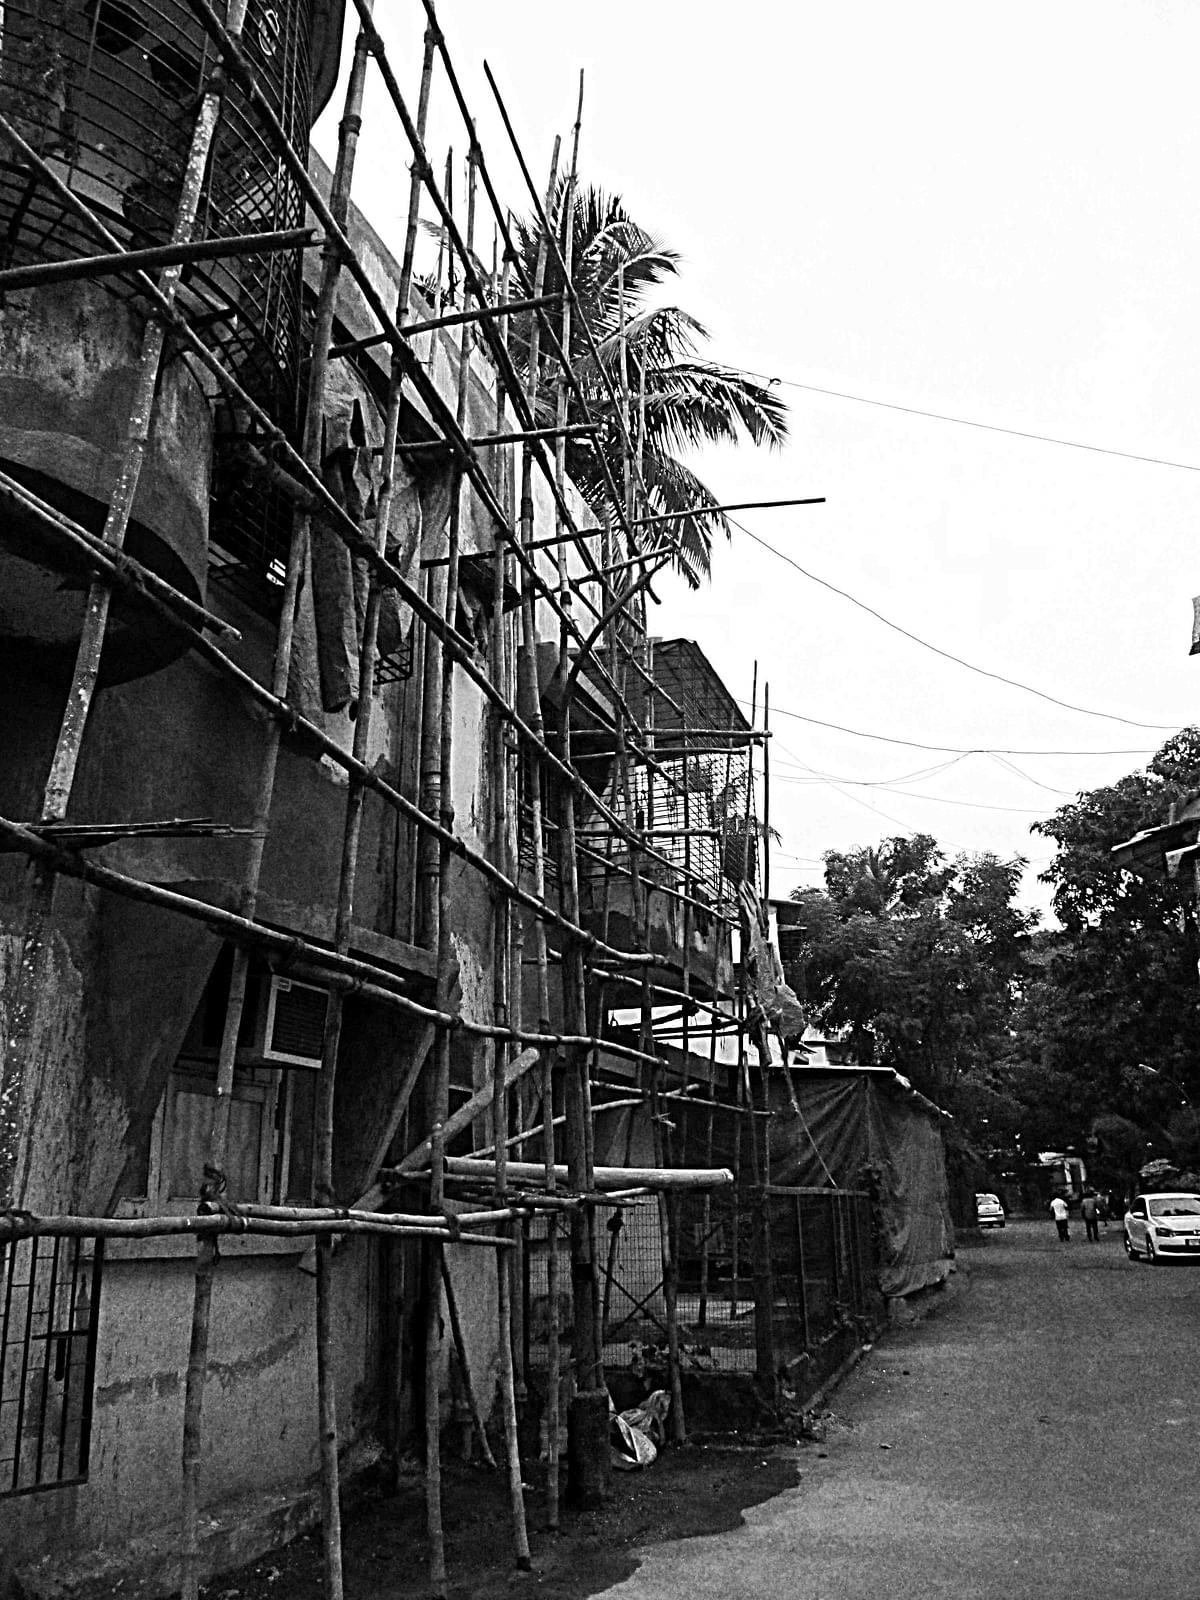 An under renovation building trying to compete with the luxuries provided by the multi-storied building it stands next to. (Photo: <b>The Quint</b>/Maanvi)